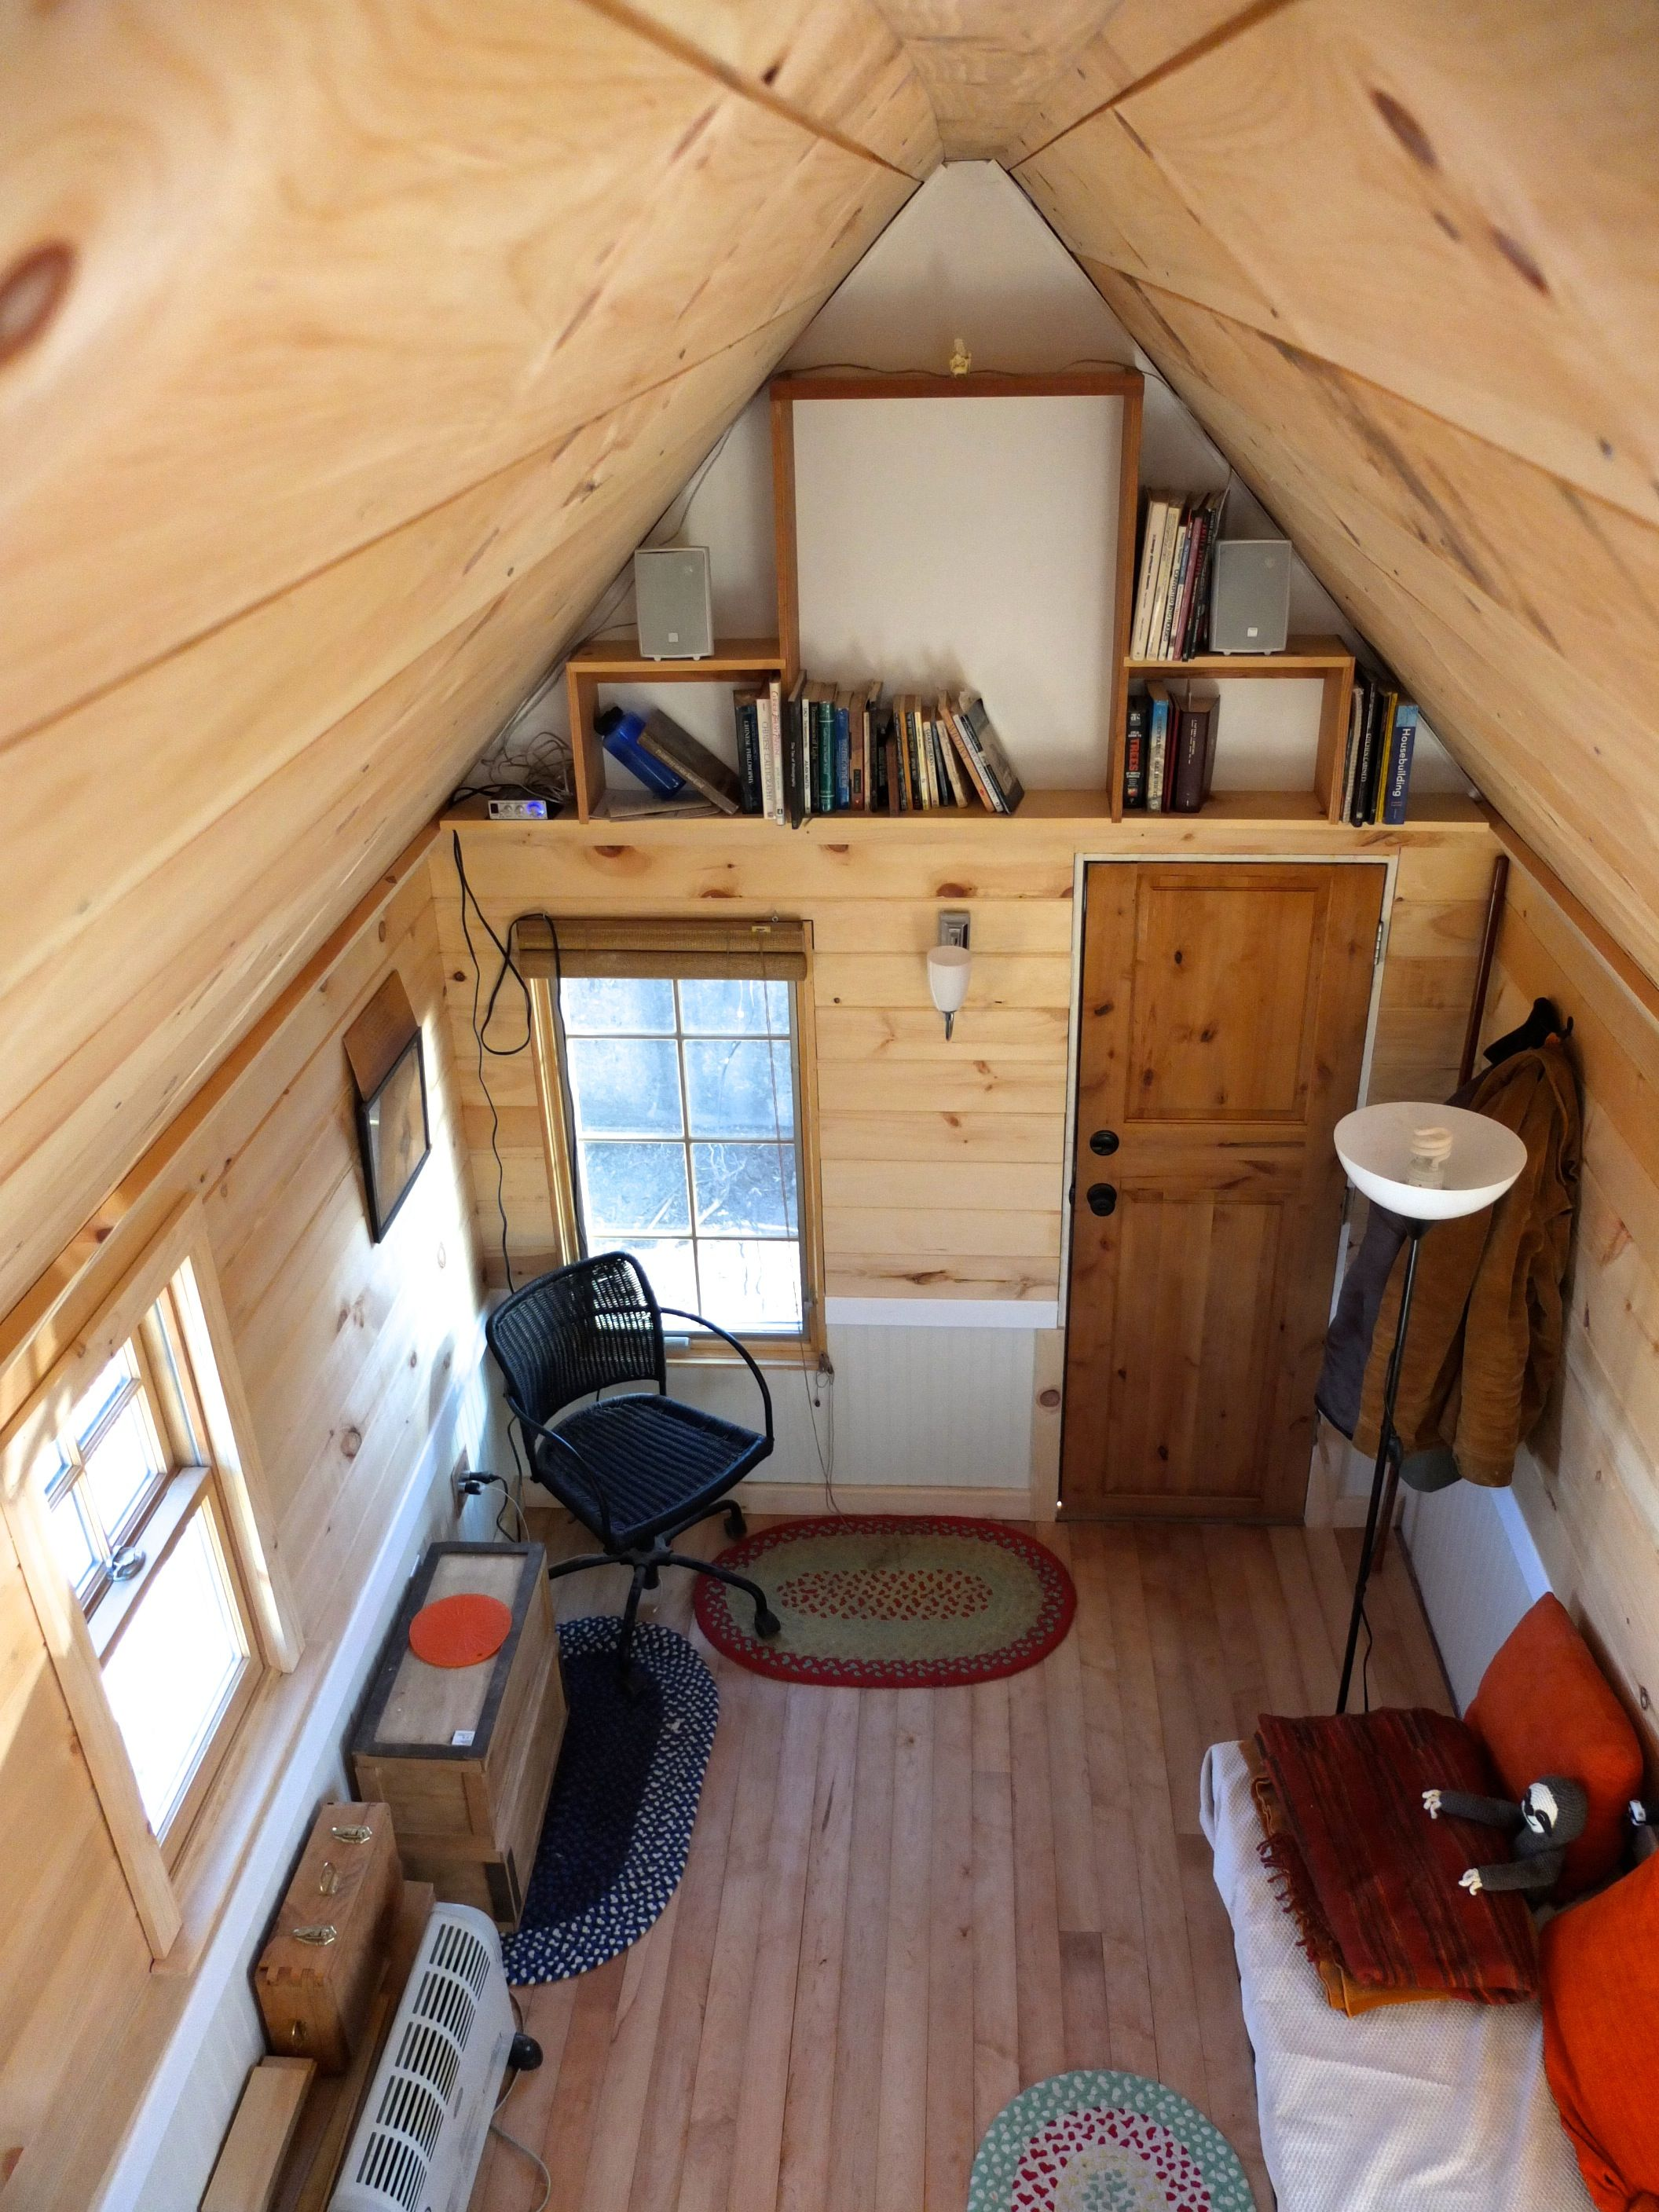 1000 images about Tiny House Stuff on Pinterest Tiny homes on